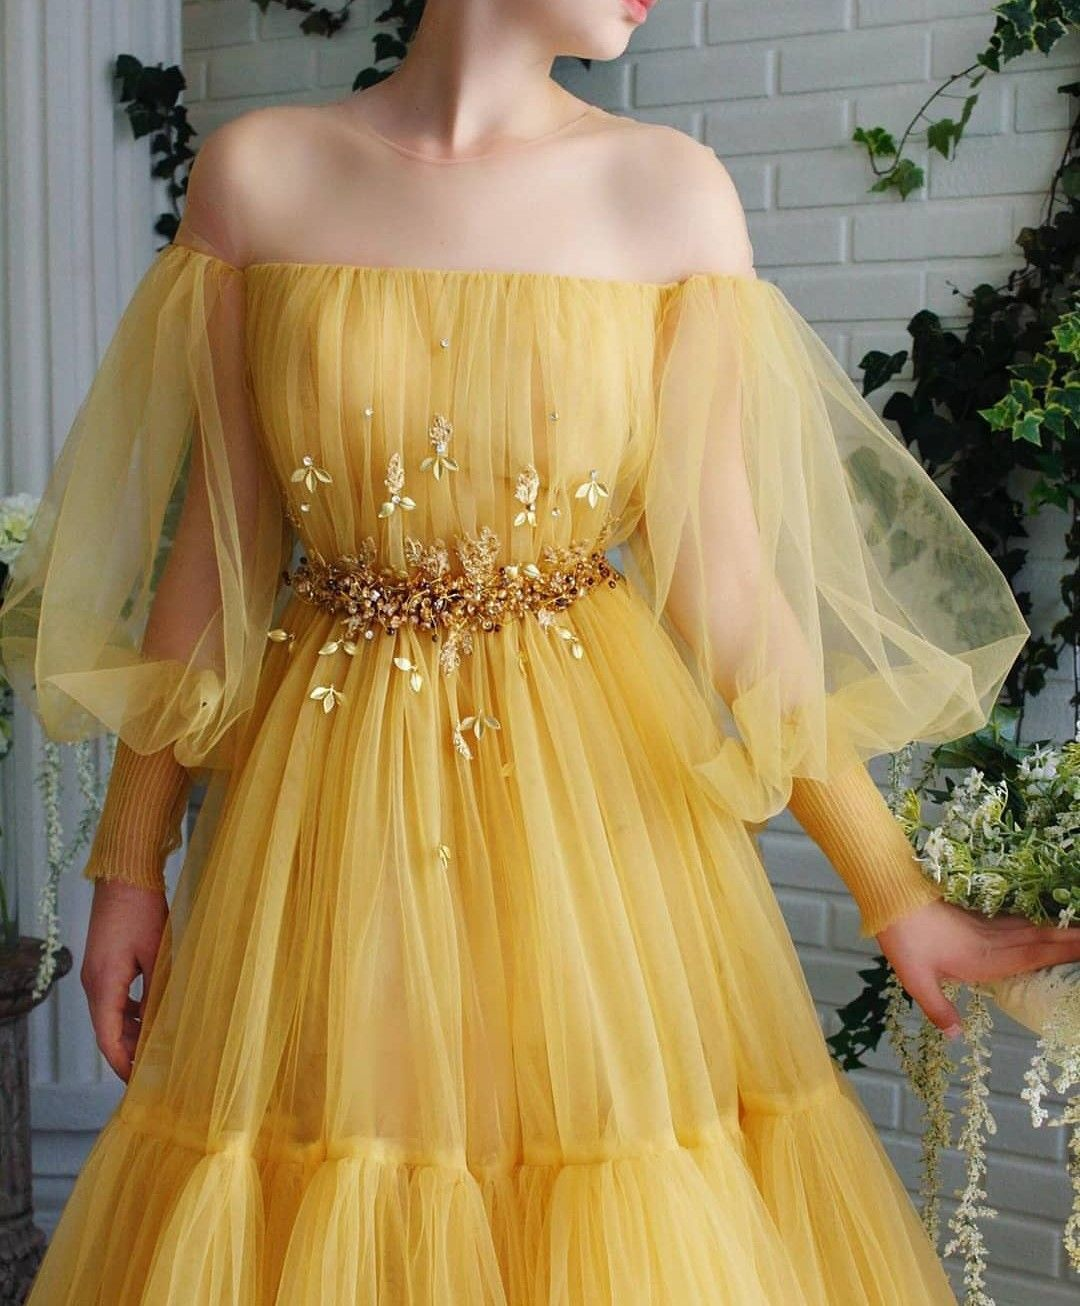 Sunflower Dress Prom Dresses Long With Sleeves Prom Dresses Yellow Prom Dresses [ 1306 x 1080 Pixel ]